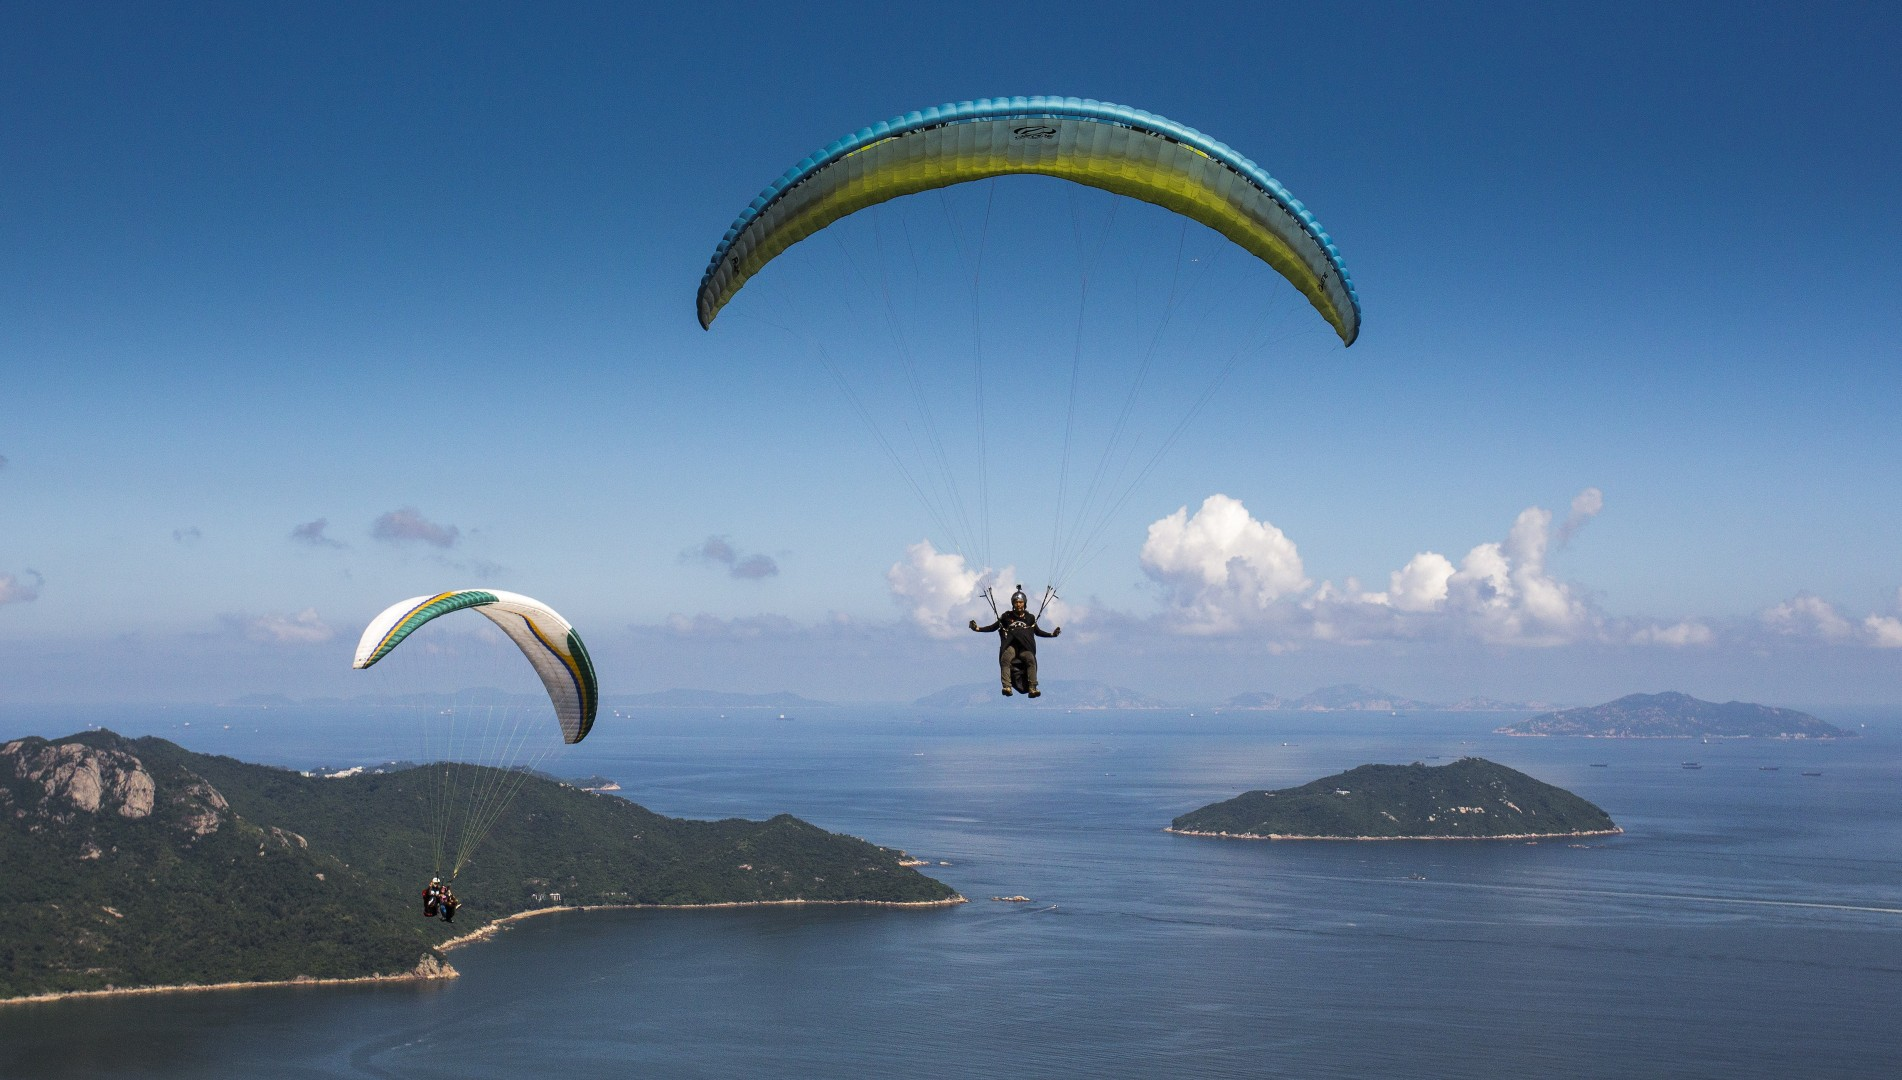 Paragliding association launches safety review and investigation